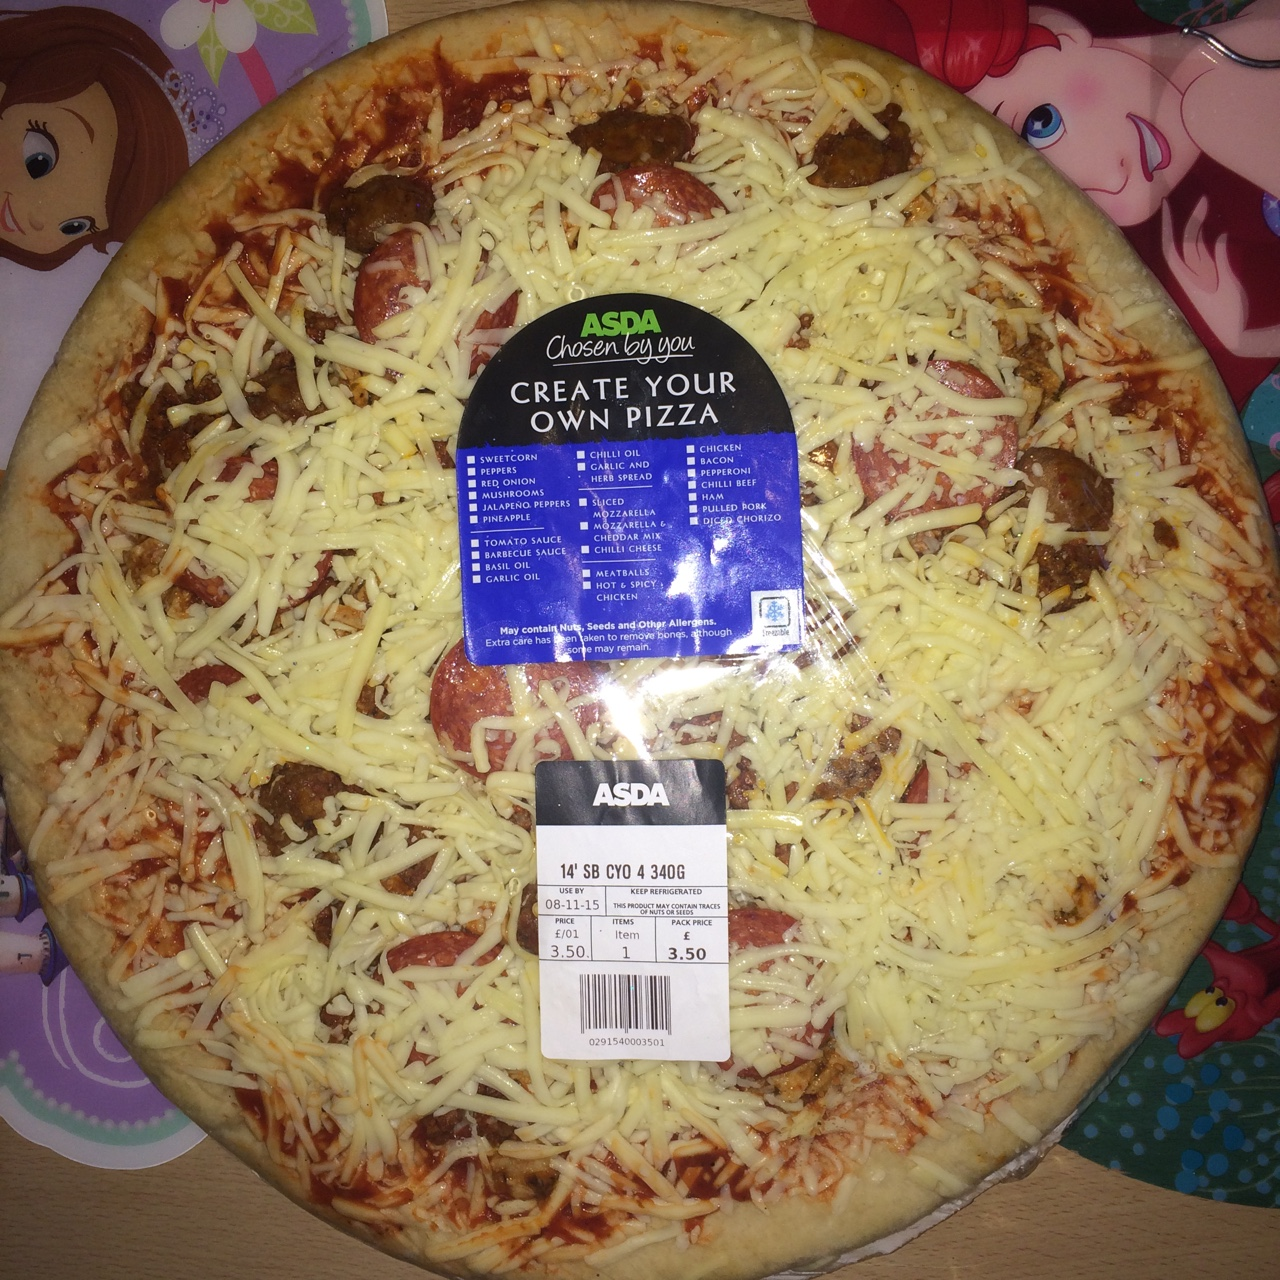 Asda Deep Pan Pizza Meatballs For Sale This Is The Depop